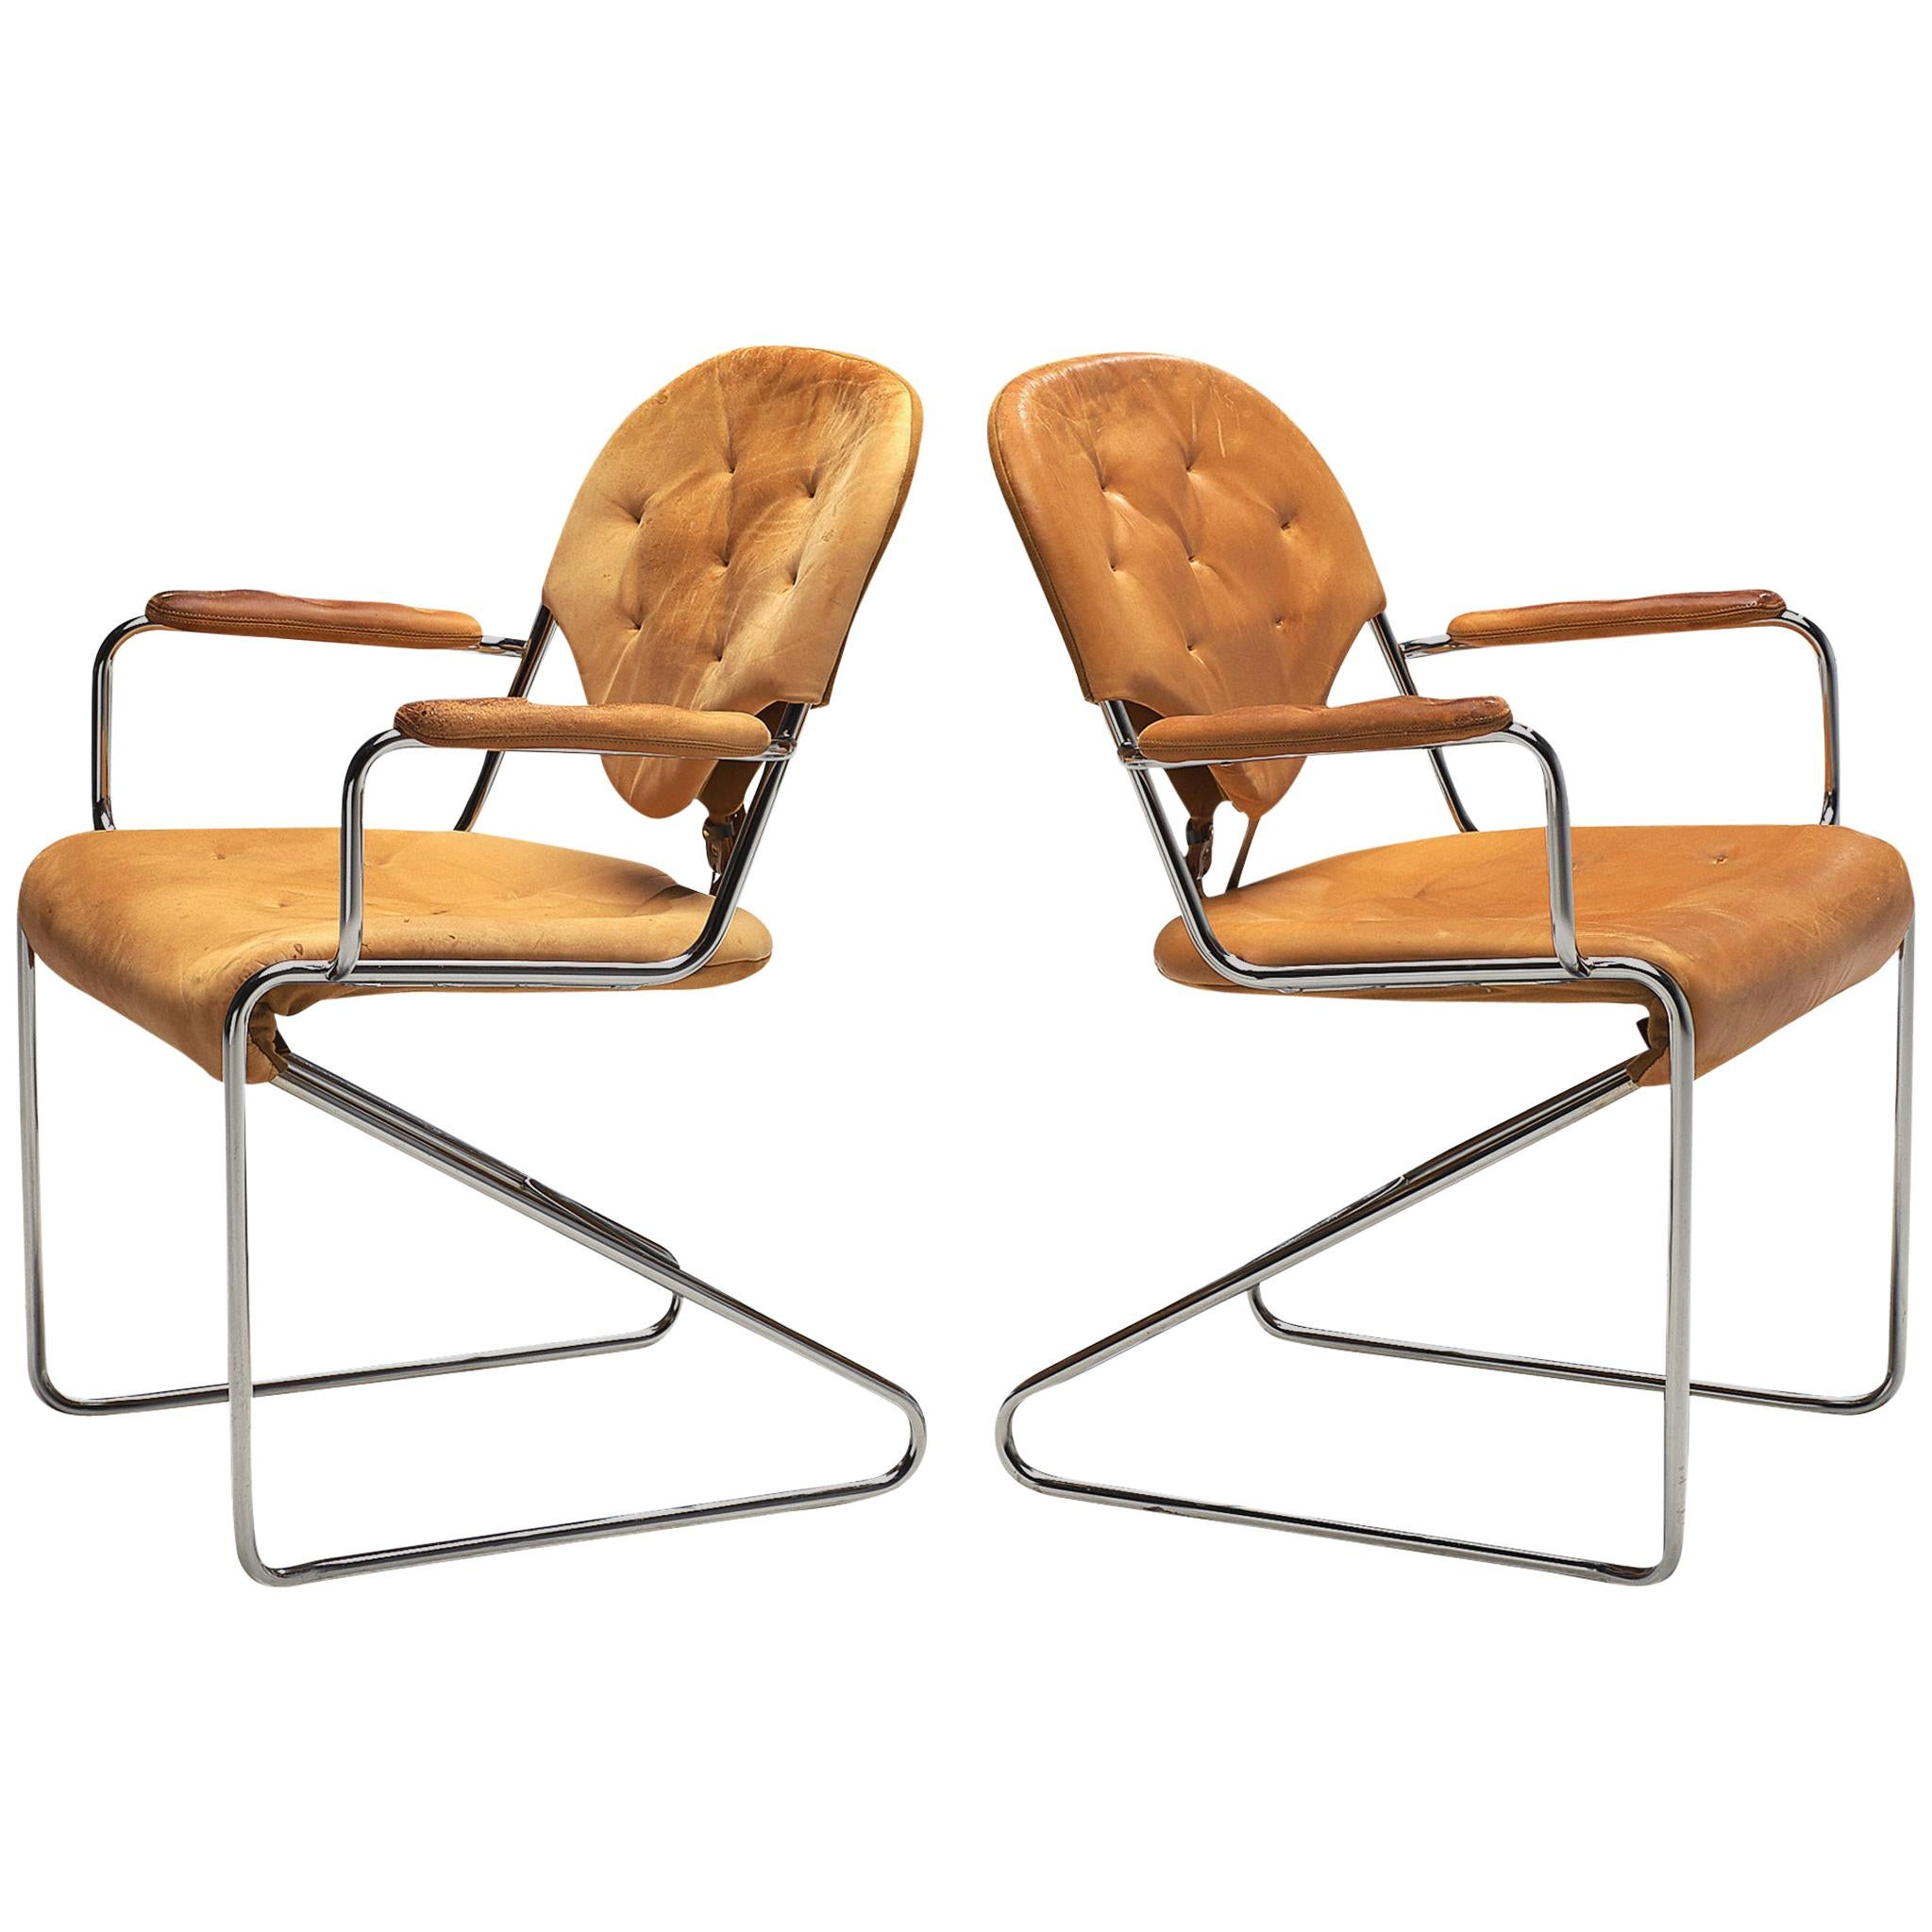 "Sam Larsson for DUX Pair of Armchairs ""1974"" in Cognac Leather"